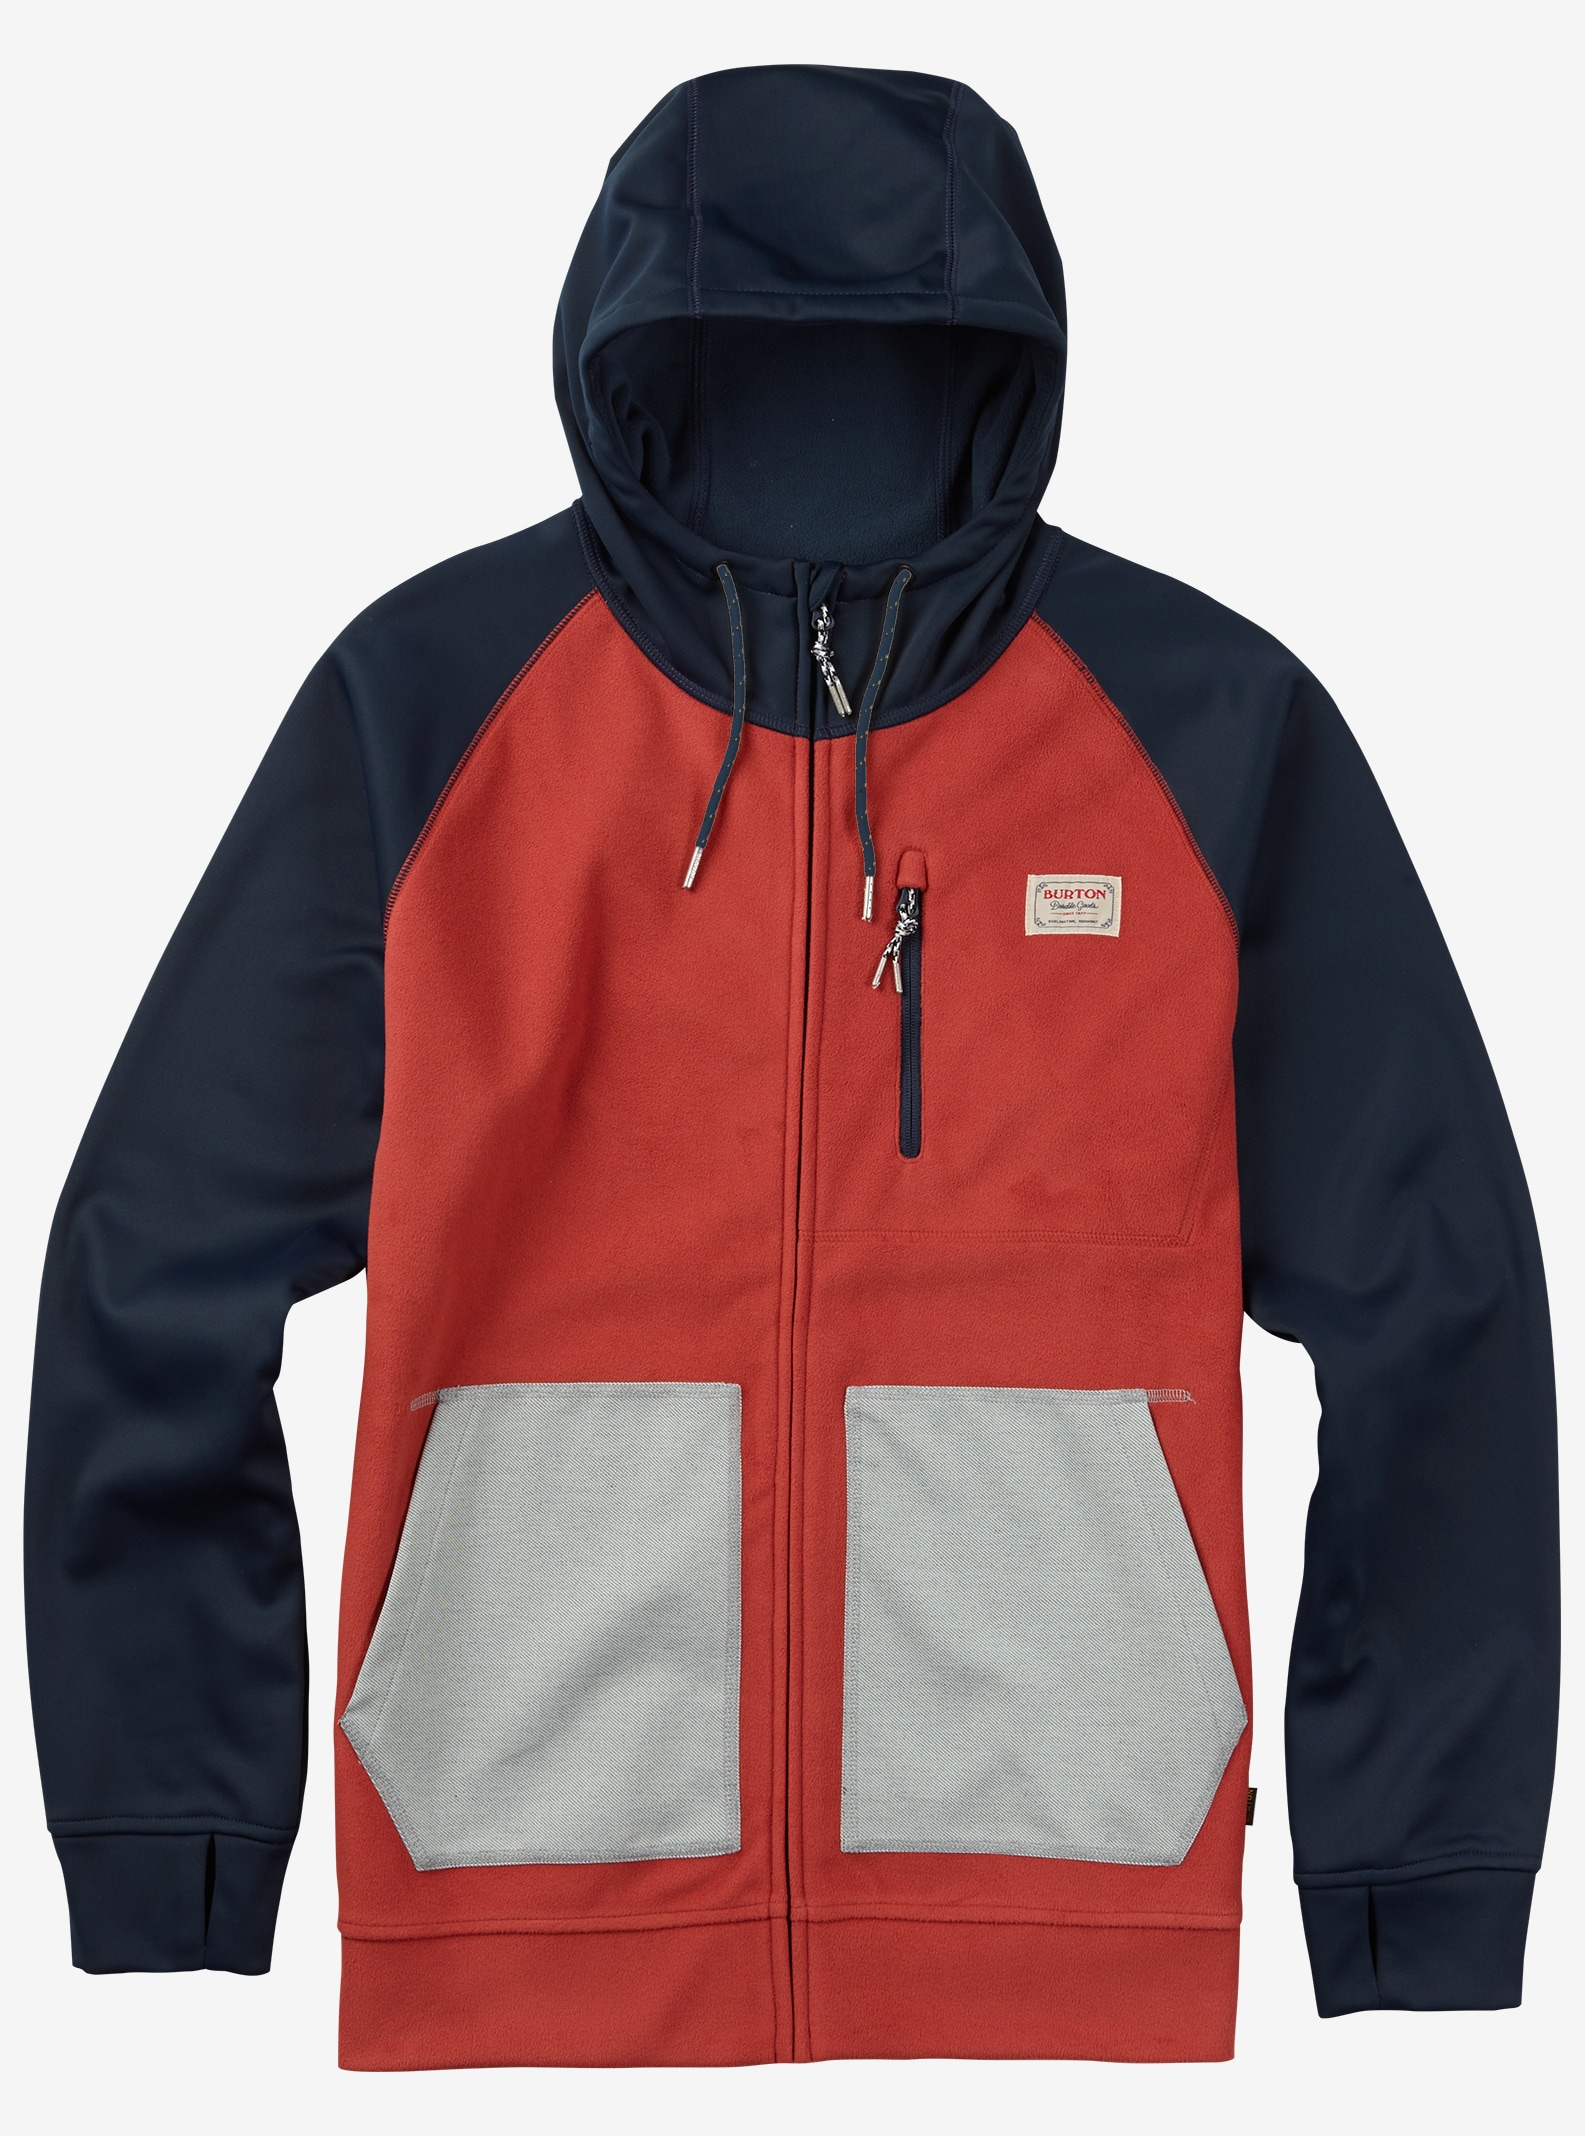 Burton Bonded Full-Zip Hoodie shown in Tandori / Eclipse